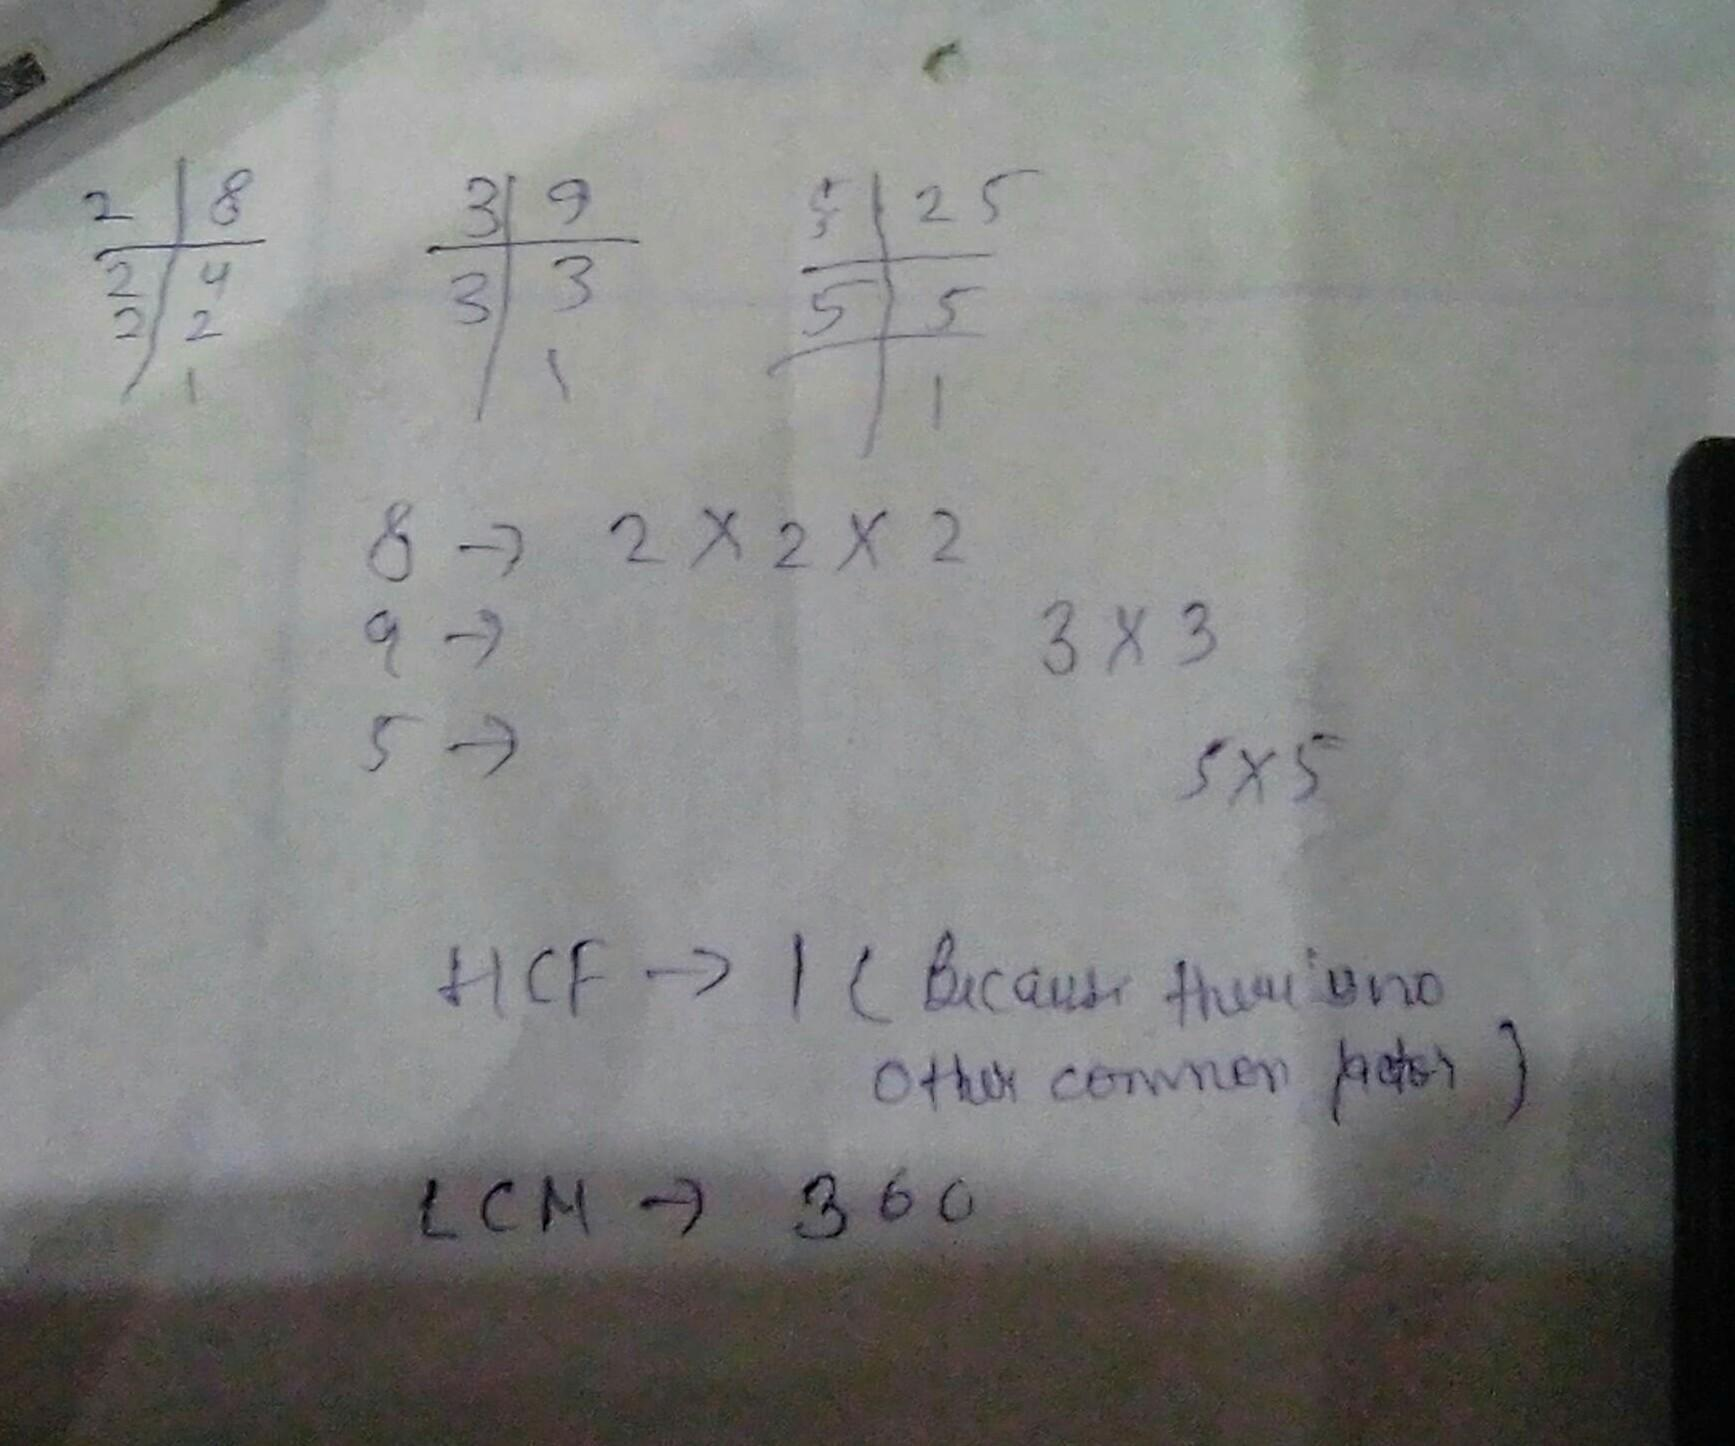 Find The Lcm And Hcf 8 9 25 By The Prime Factorization